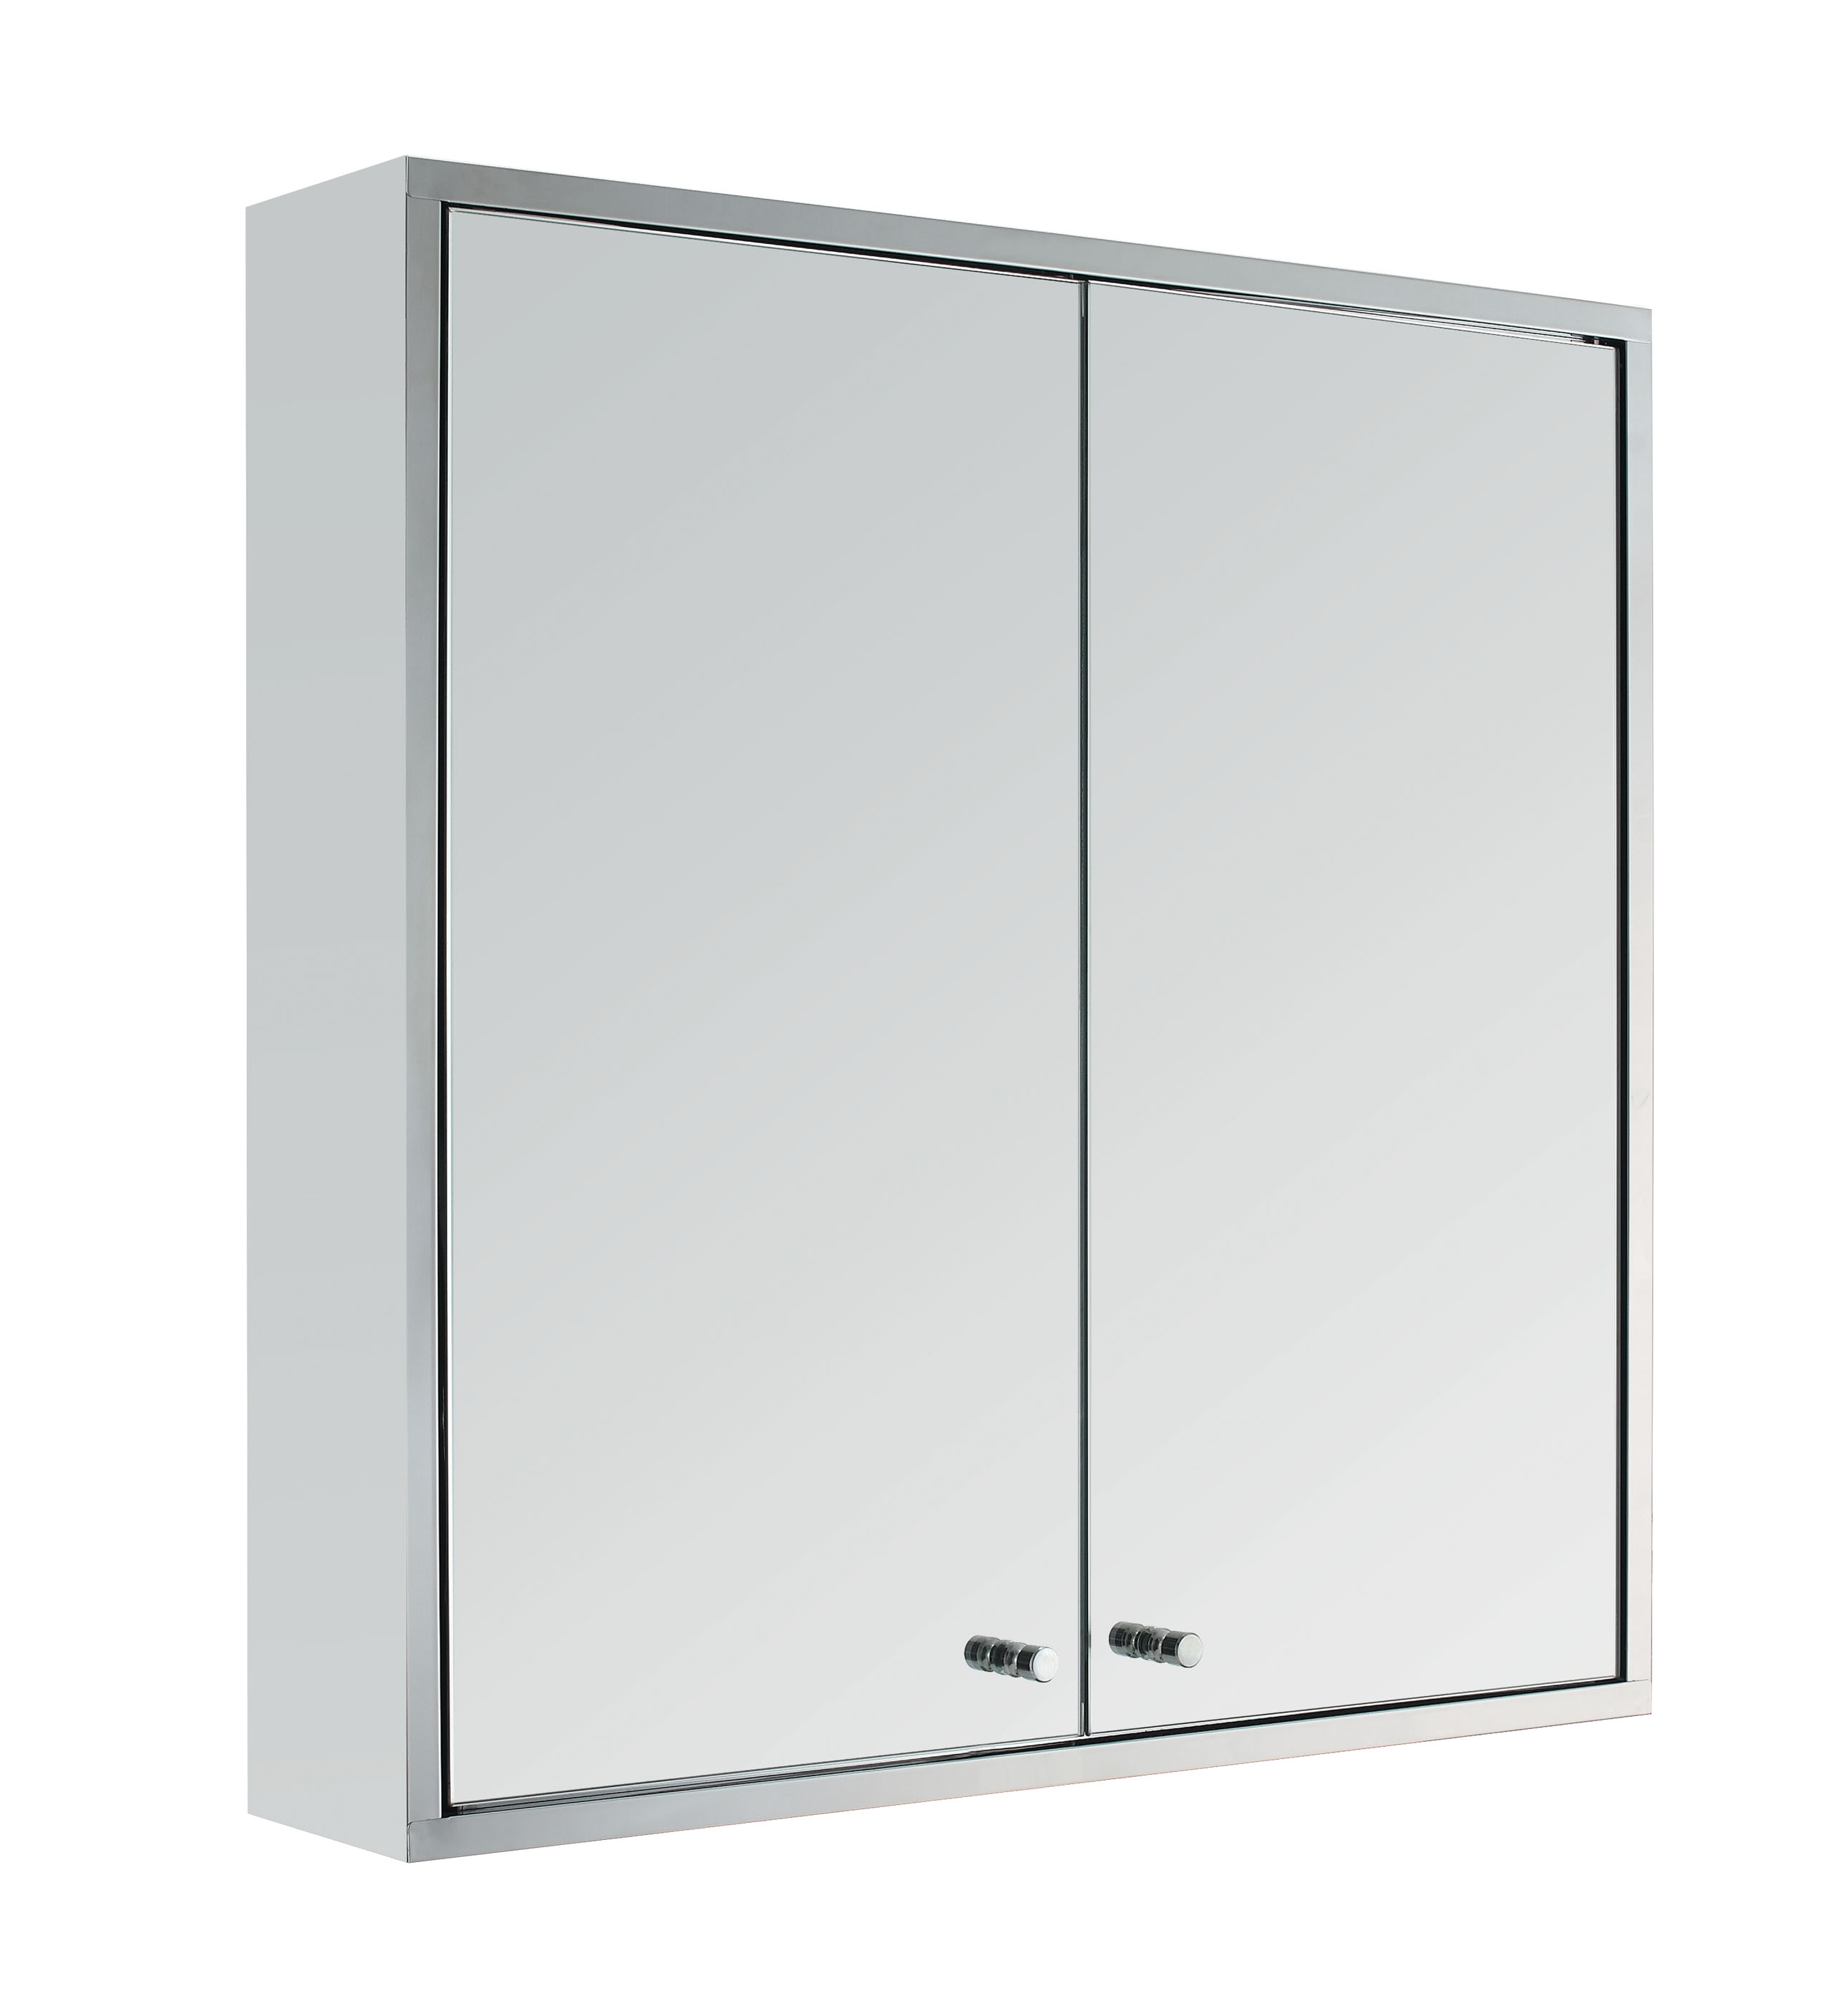 Bathroom Wall Cabinets Stainless Steelstainless steel bathroom wall cabinet details about stainless